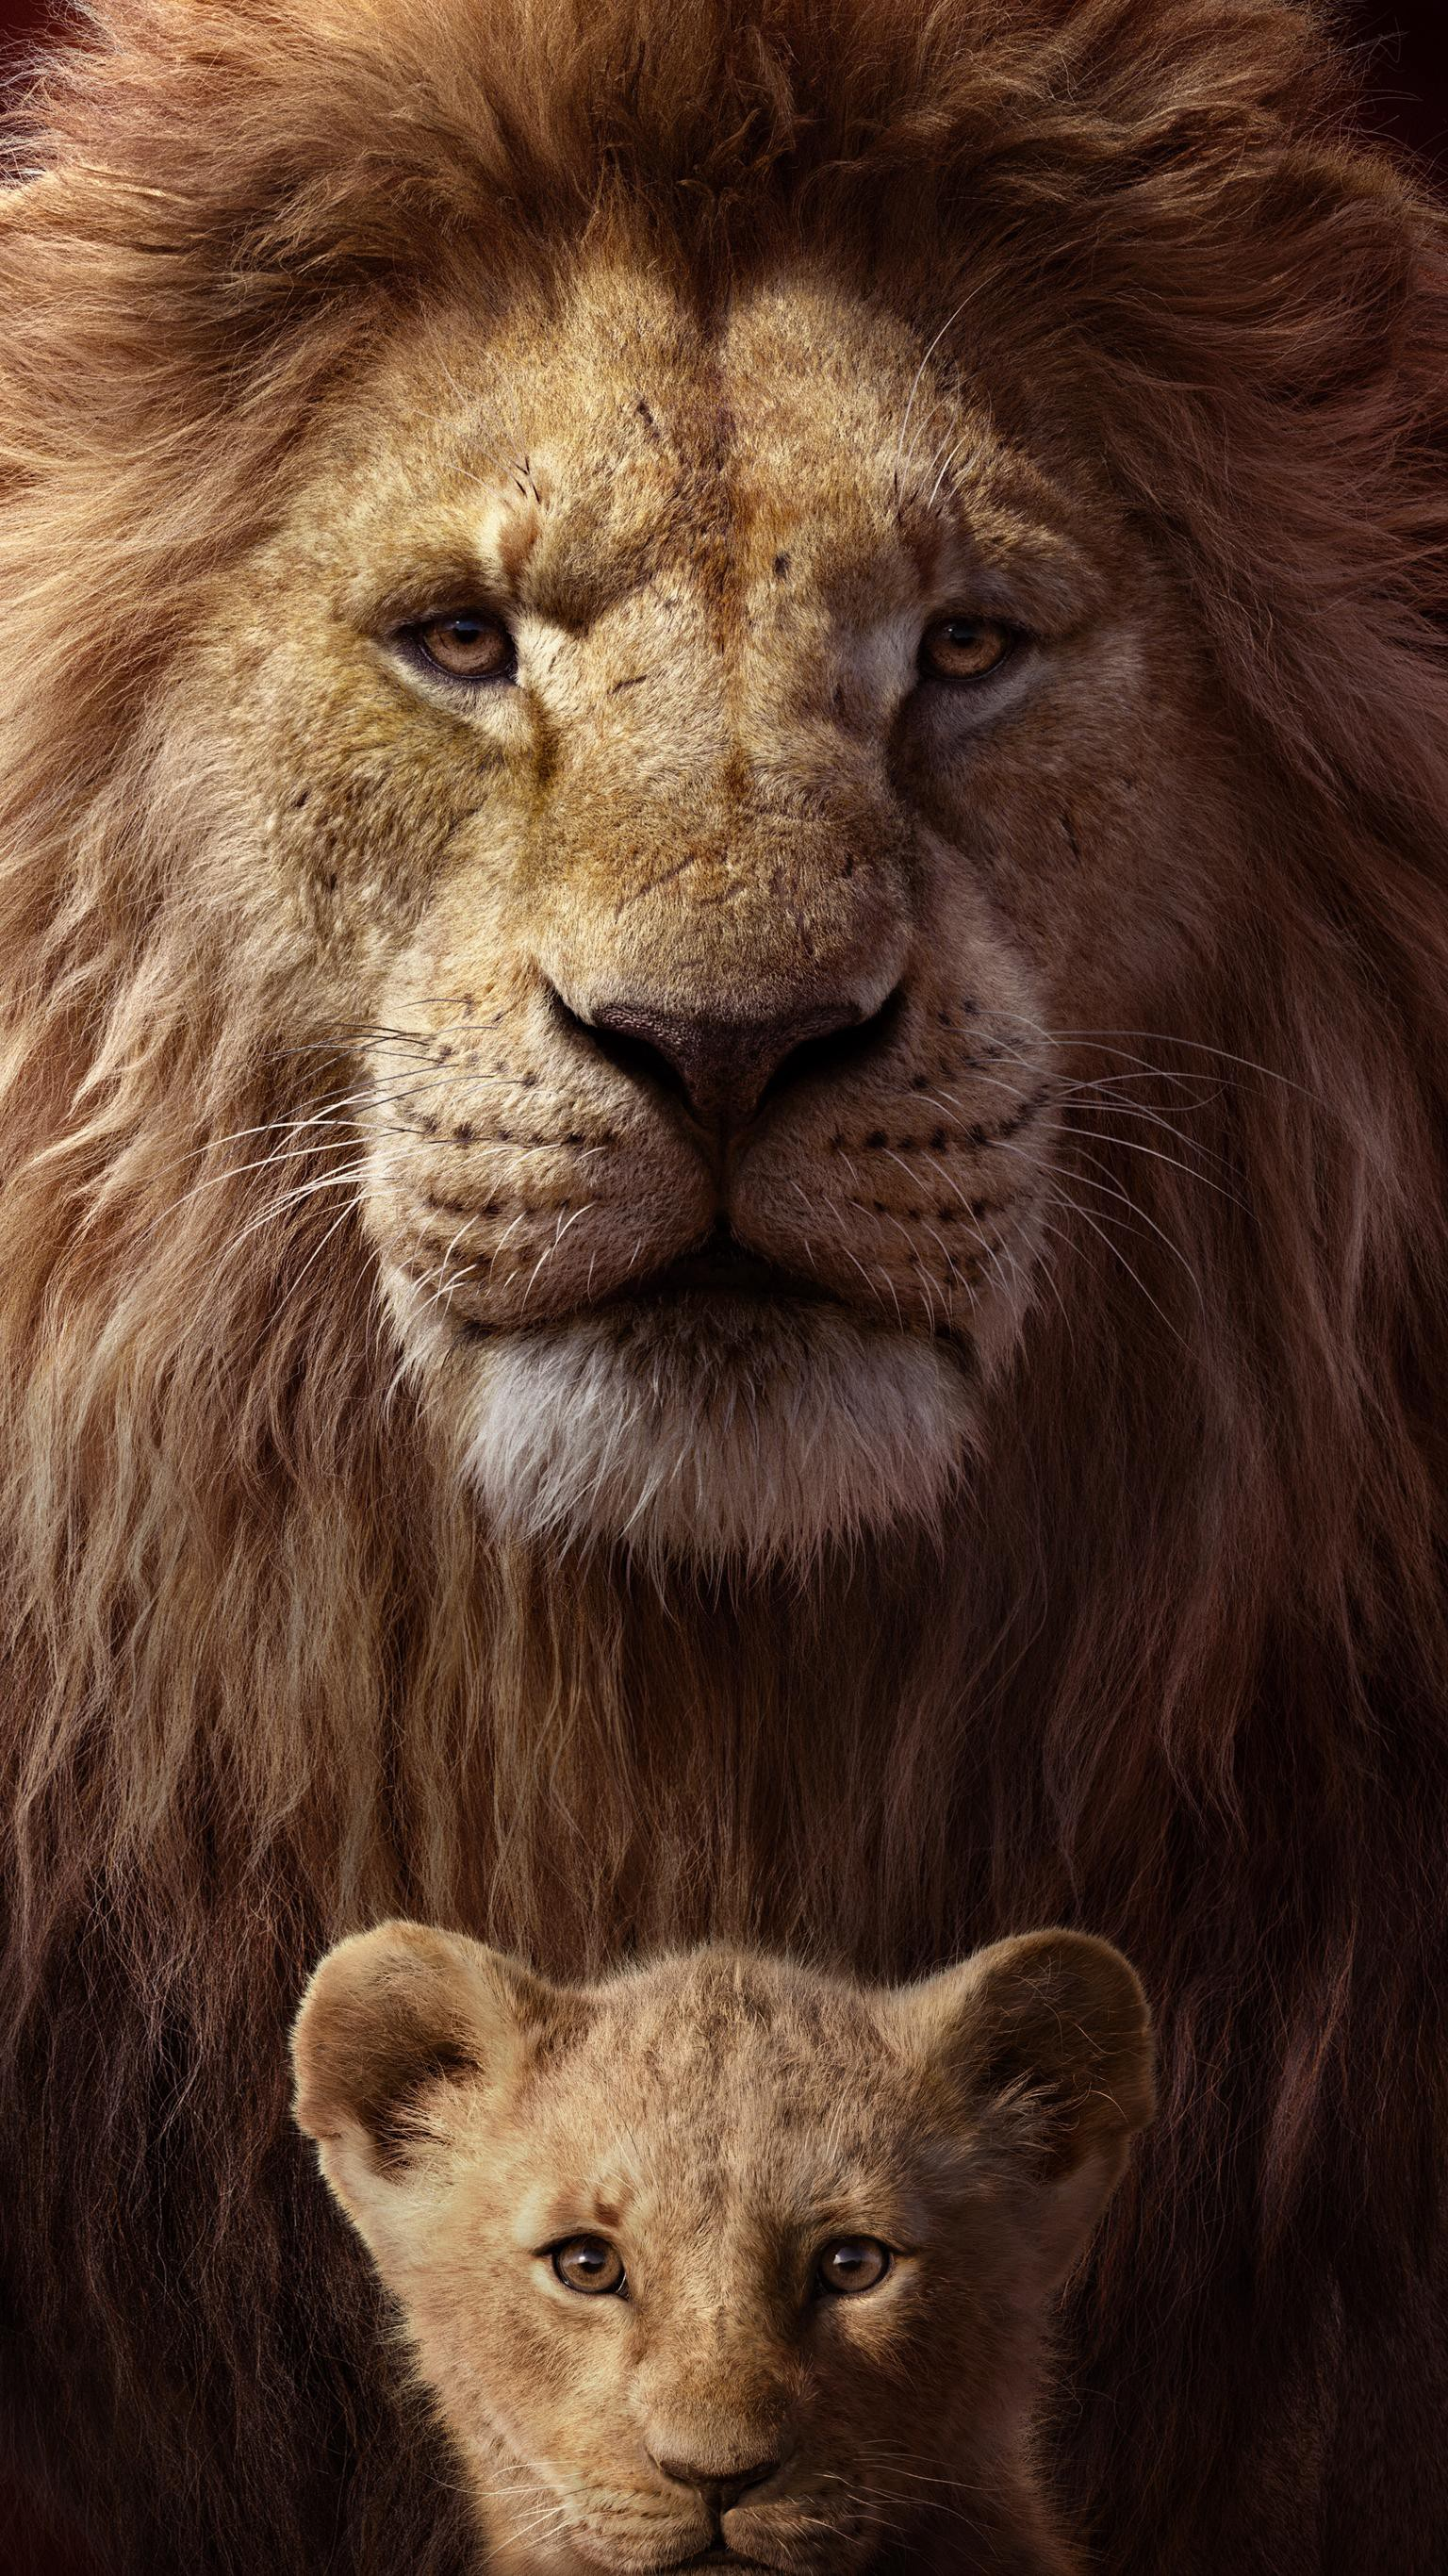 The Lion King 2019 Free Streaming Hd Google Drive